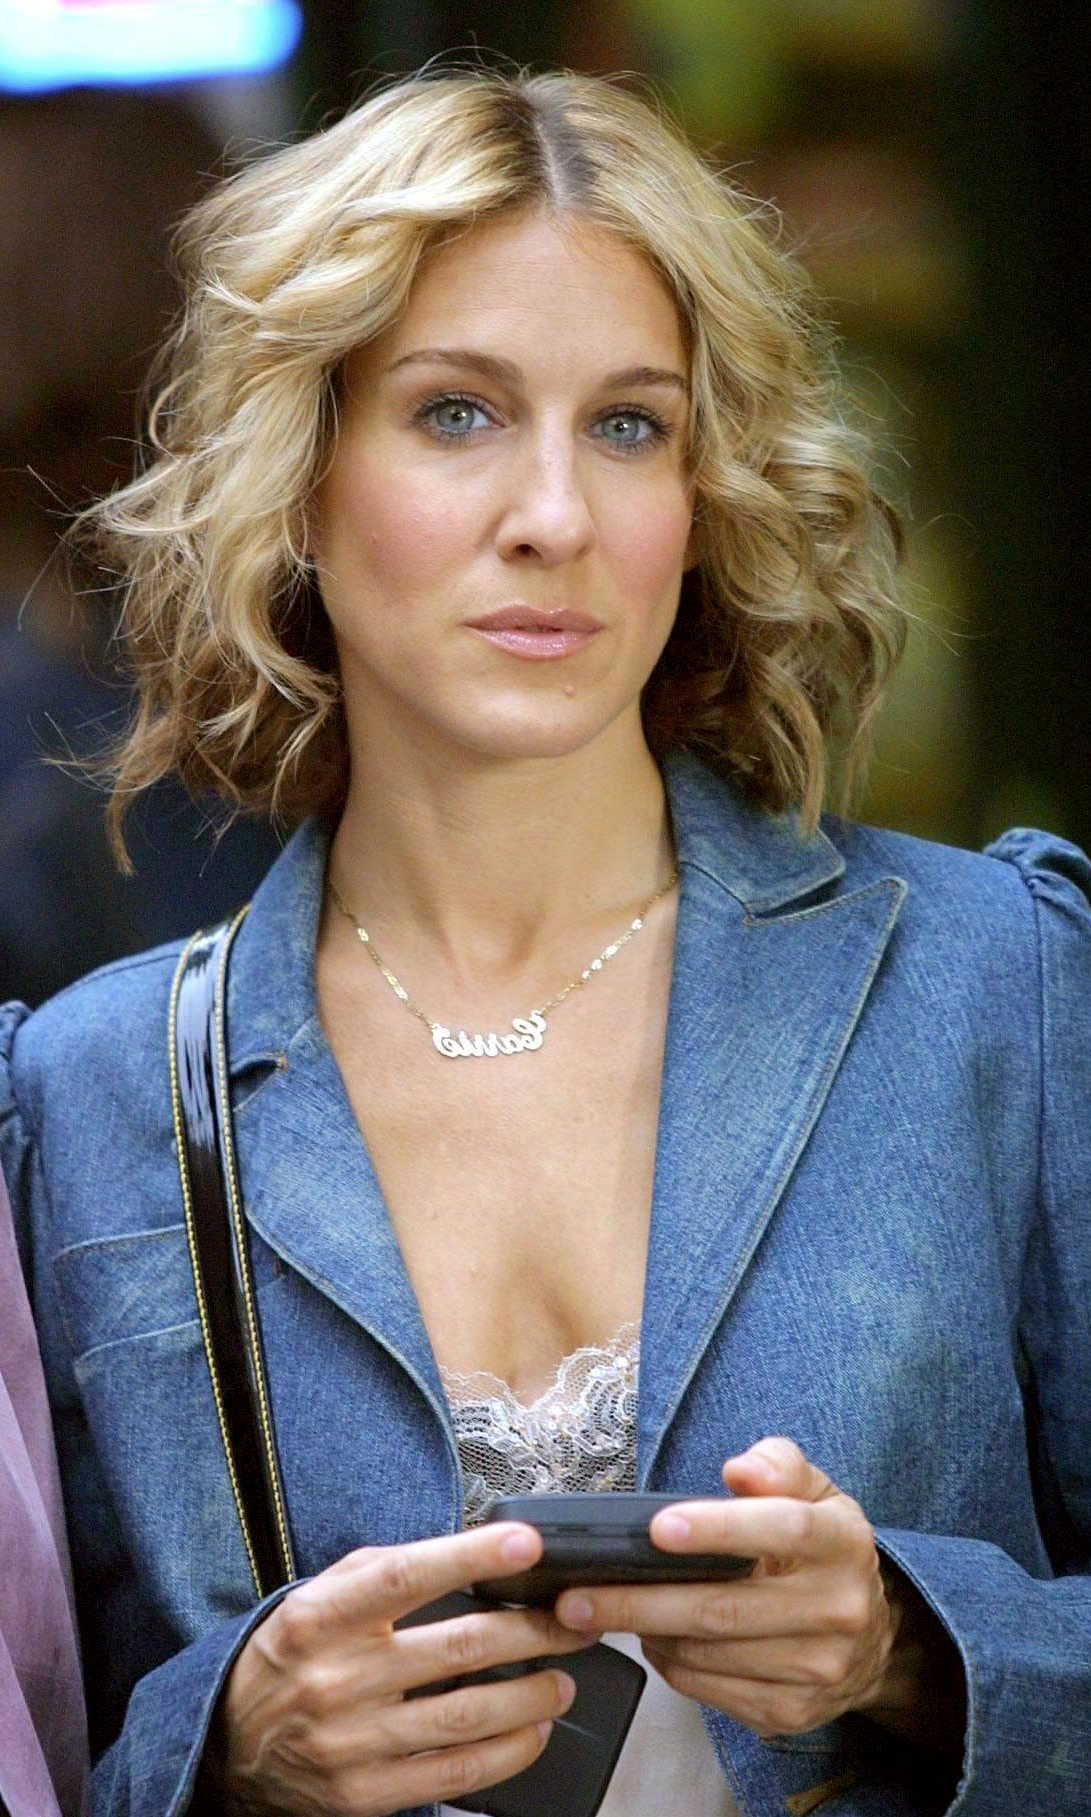 Beautiful Short Bob Hairstyles And Haircuts With Bangs   Hairstyles Throughout Sarah Jessica Parker Short Hairstyles (View 2 of 25)